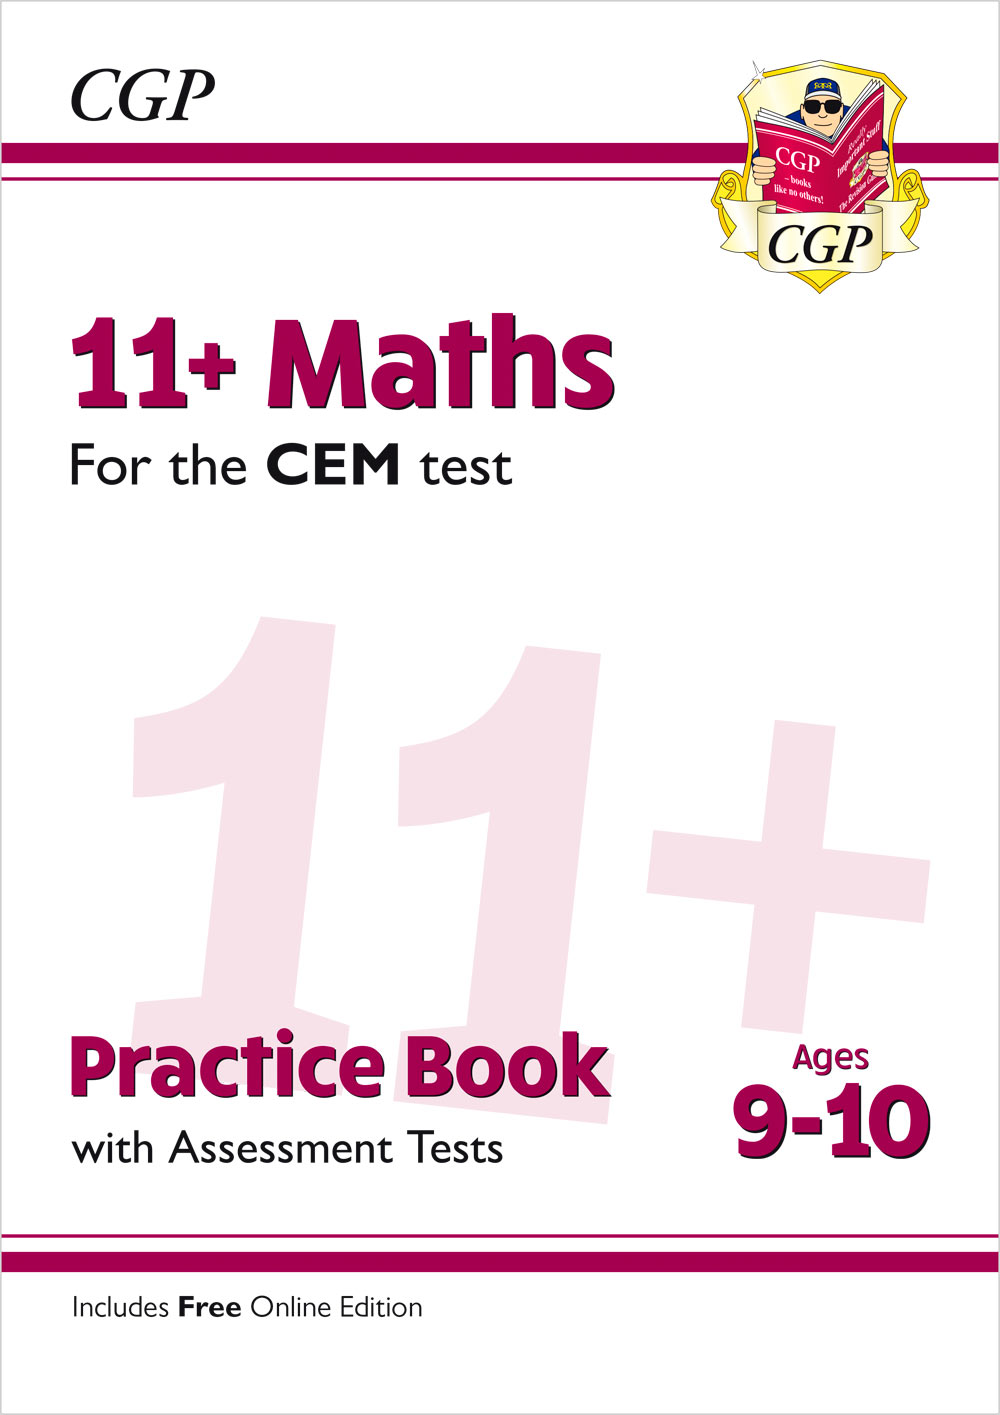 M5QDE2 - New 11+ CEM Maths Practice Book & Assessment Tests - Ages 9-10 (with Online Edition)